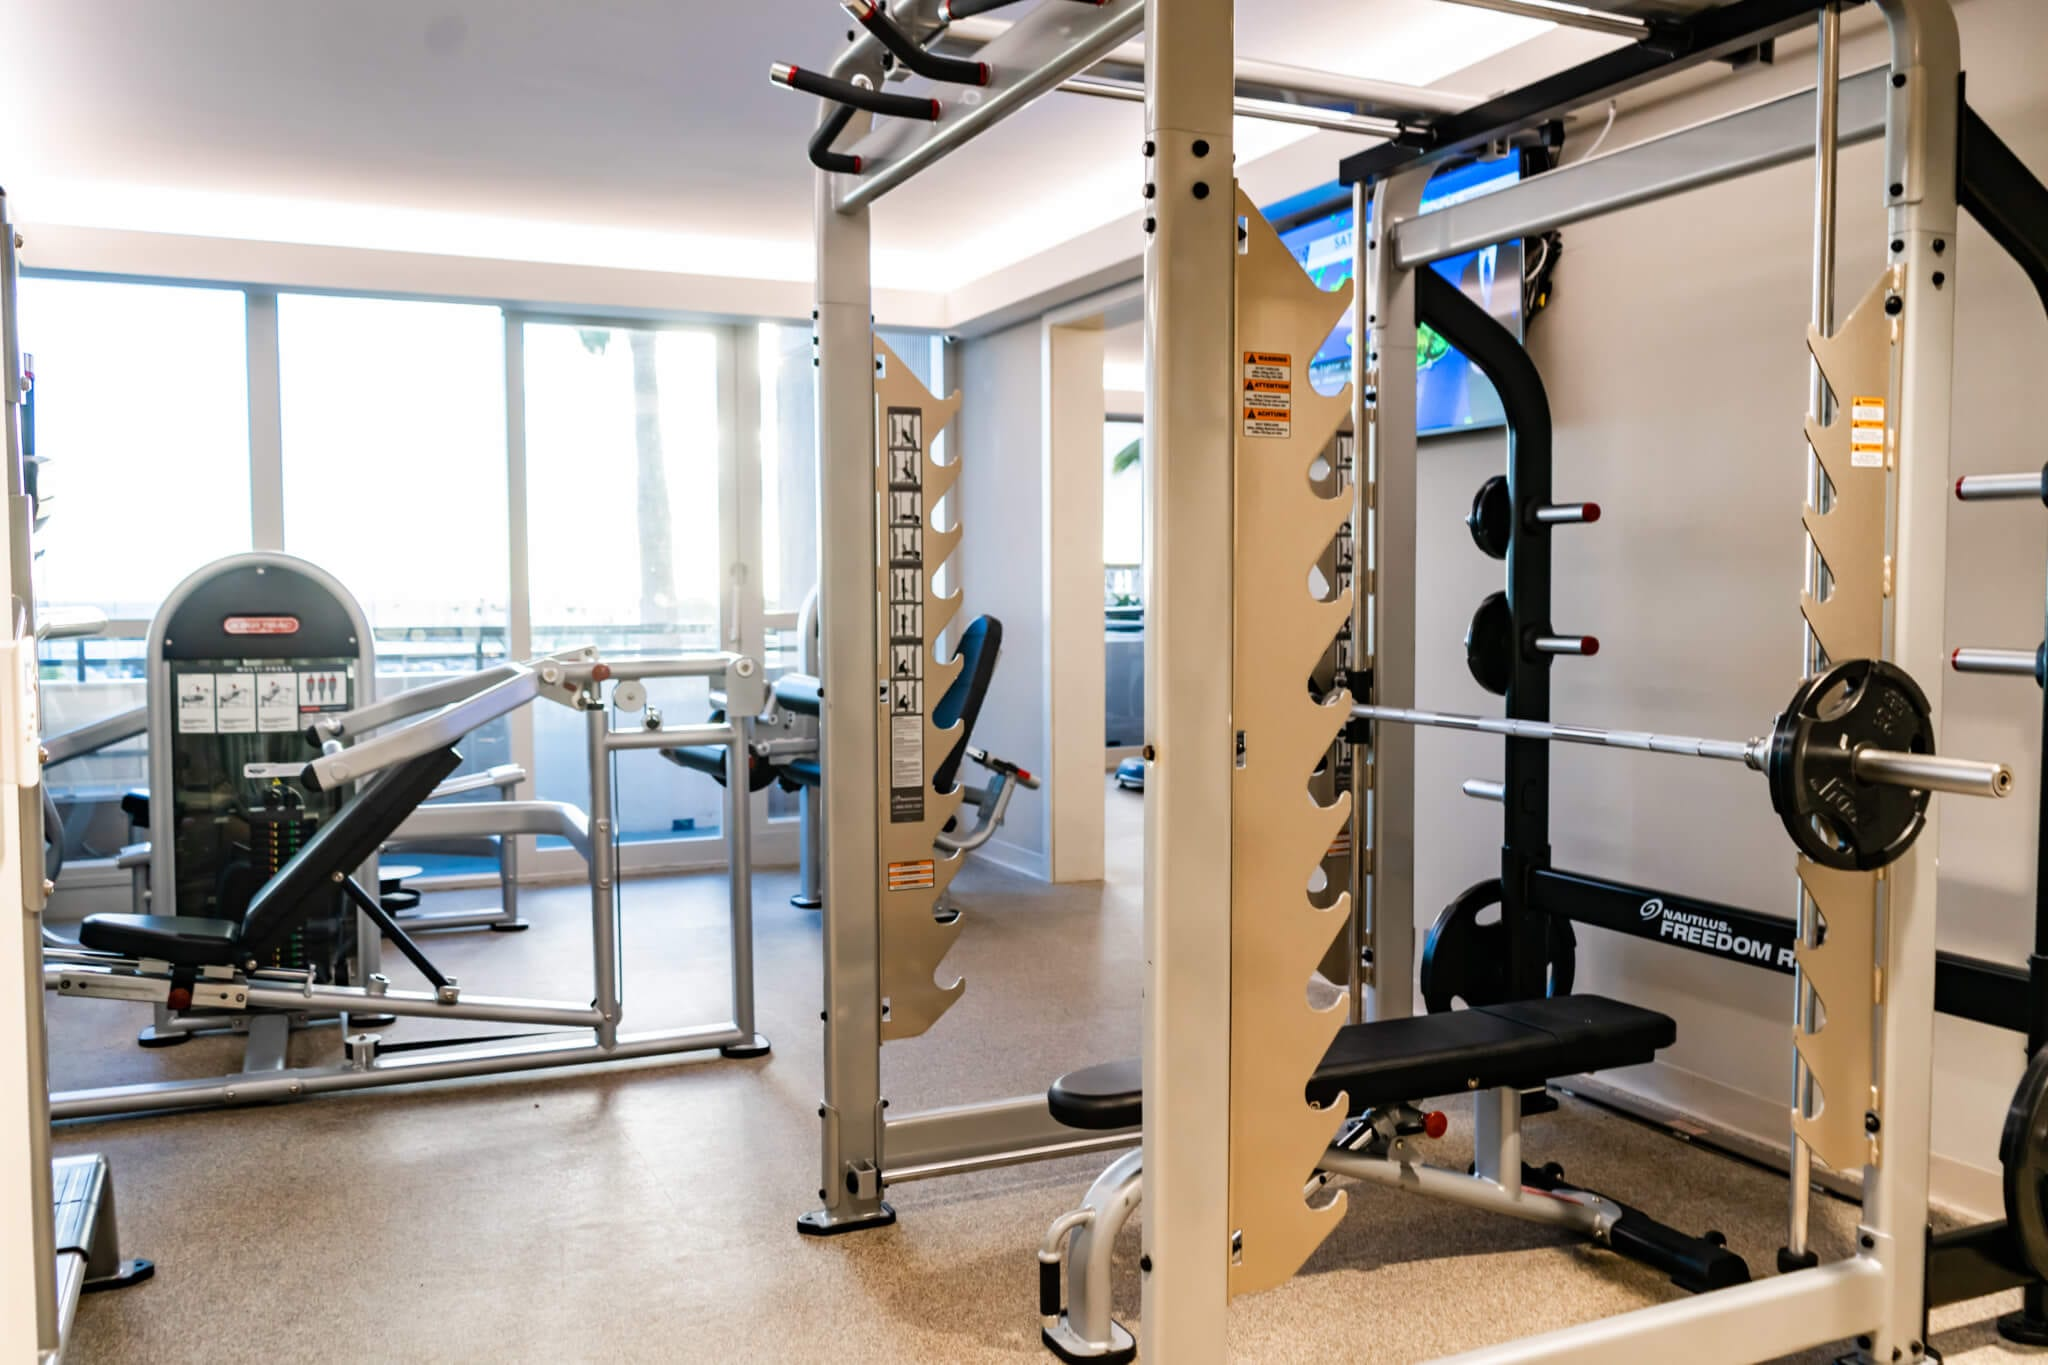 Fitness Facility - bikes, treadmills and weight benches.